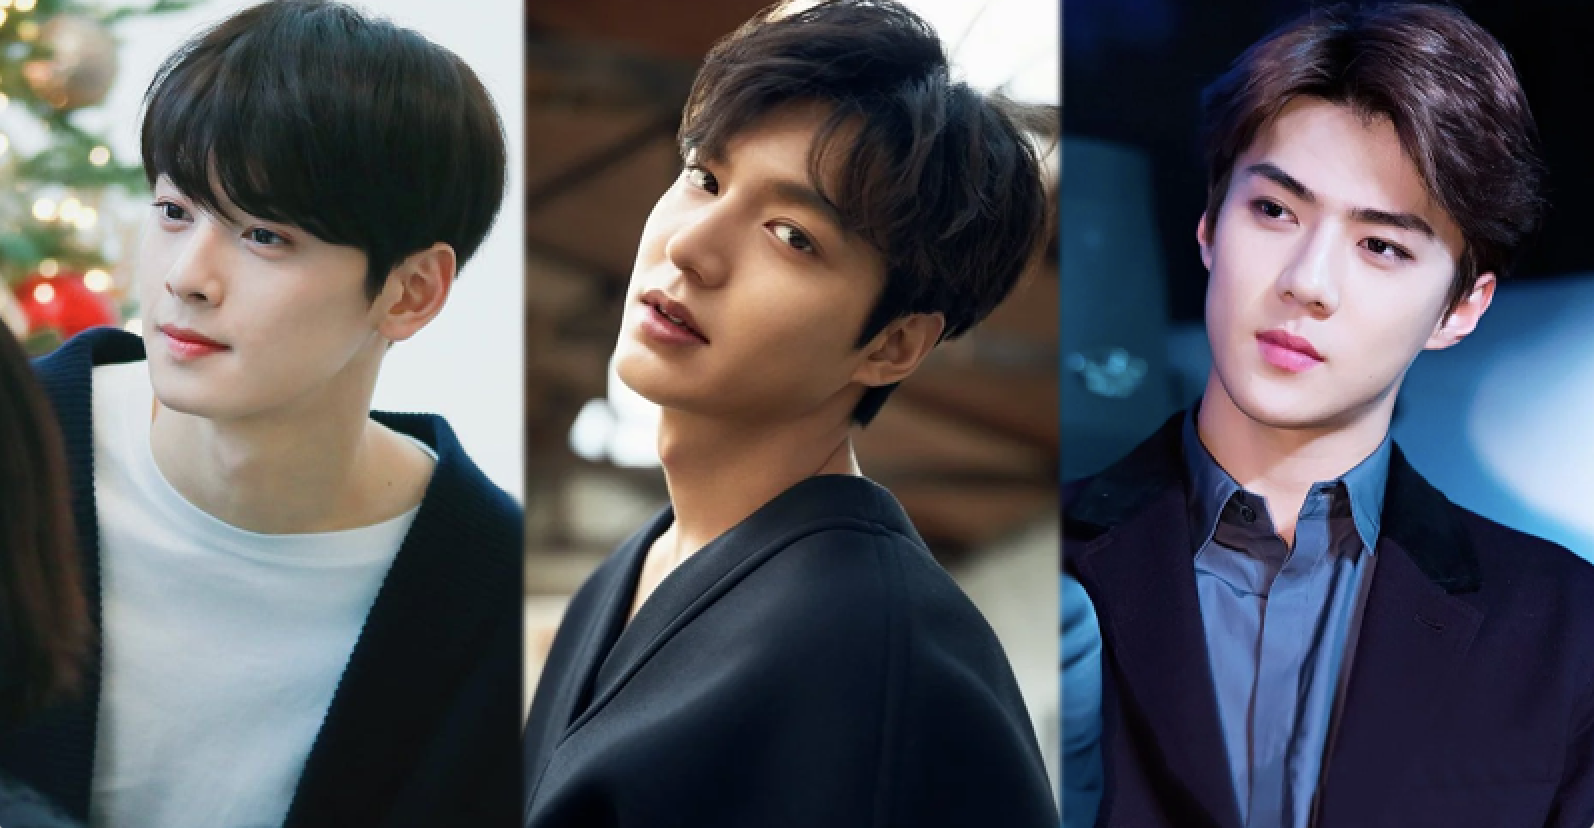 Top 15 Male Korean Celebrities Have The Most Followers On Instagram